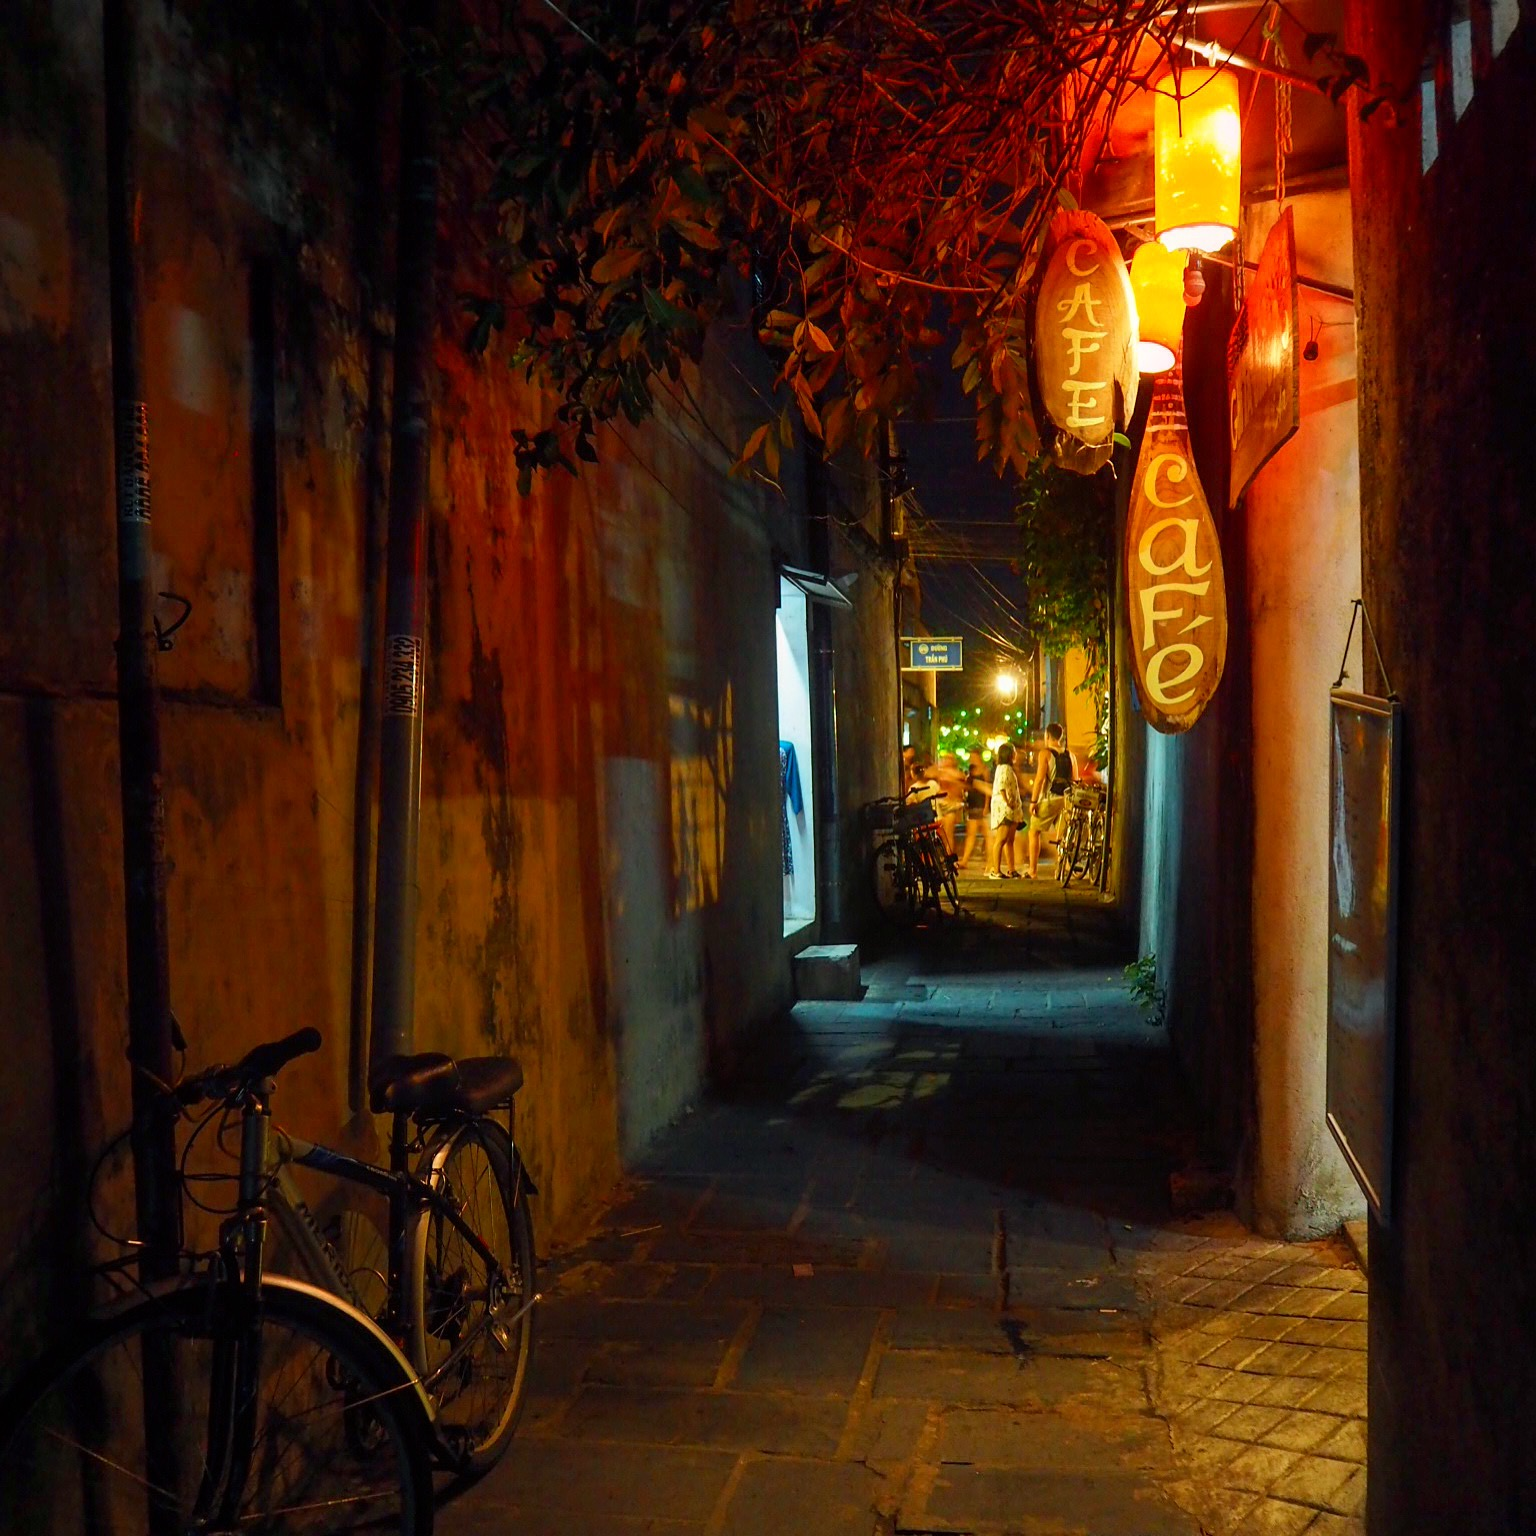 One of Hoi An's many alleyways